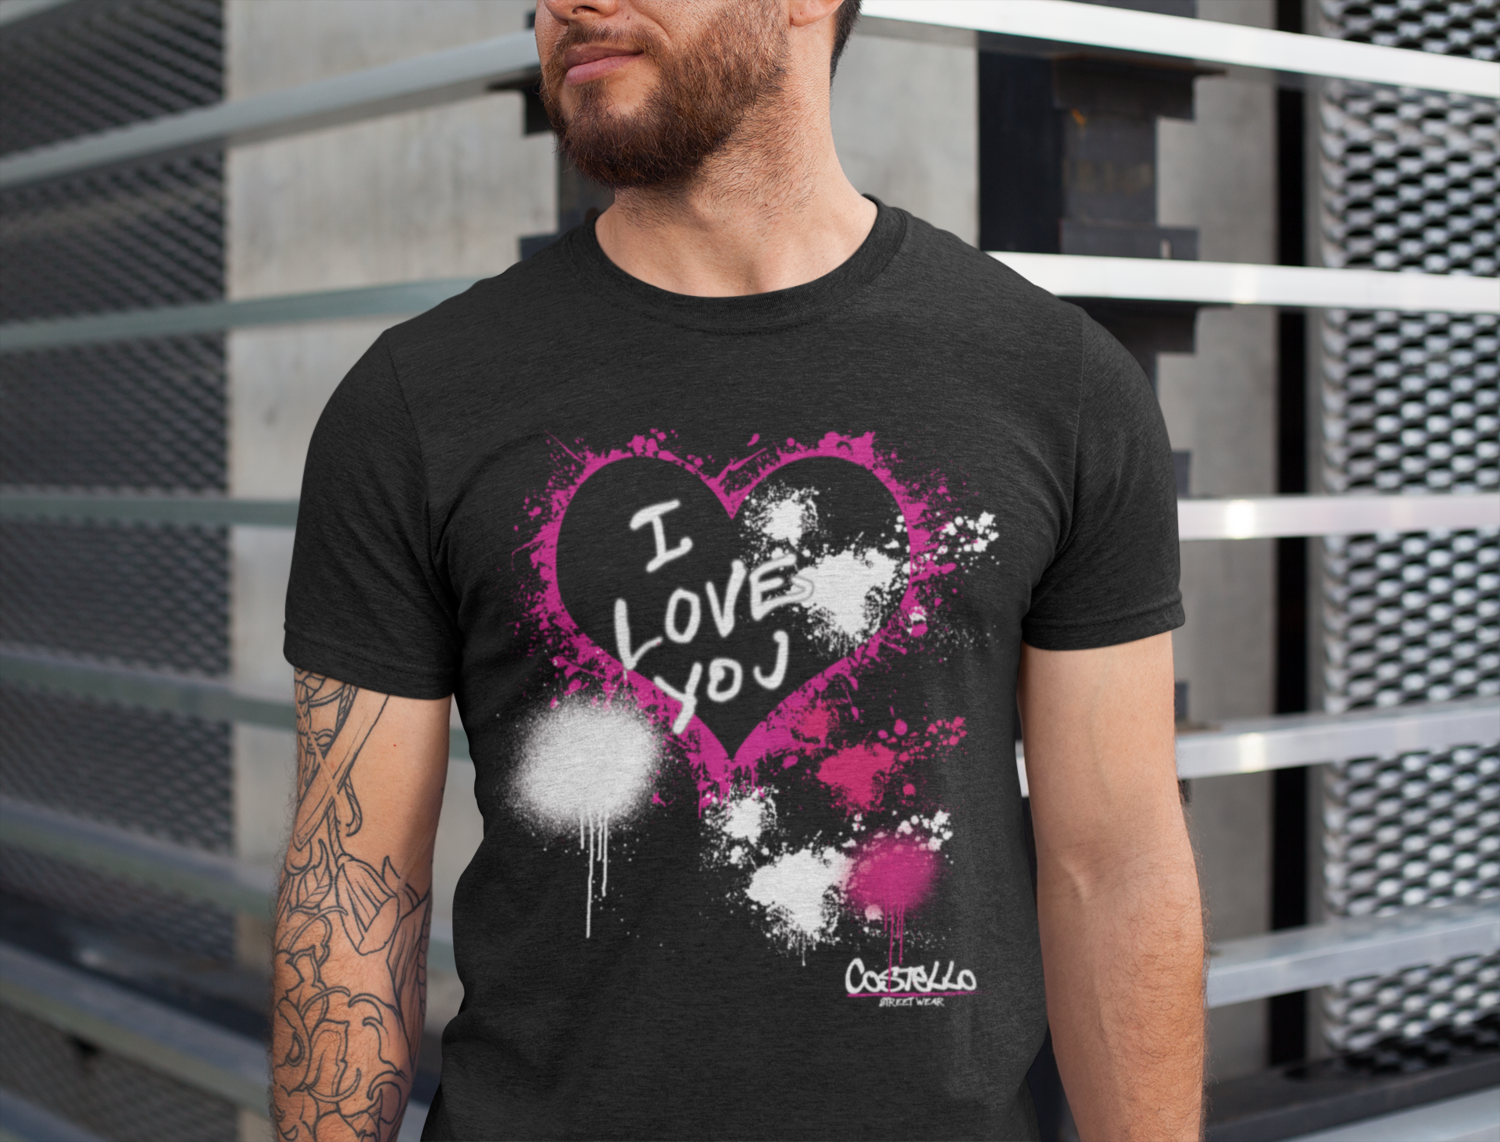 I LV You Tee - Men's / unisex  classic fit recycled t-shirt